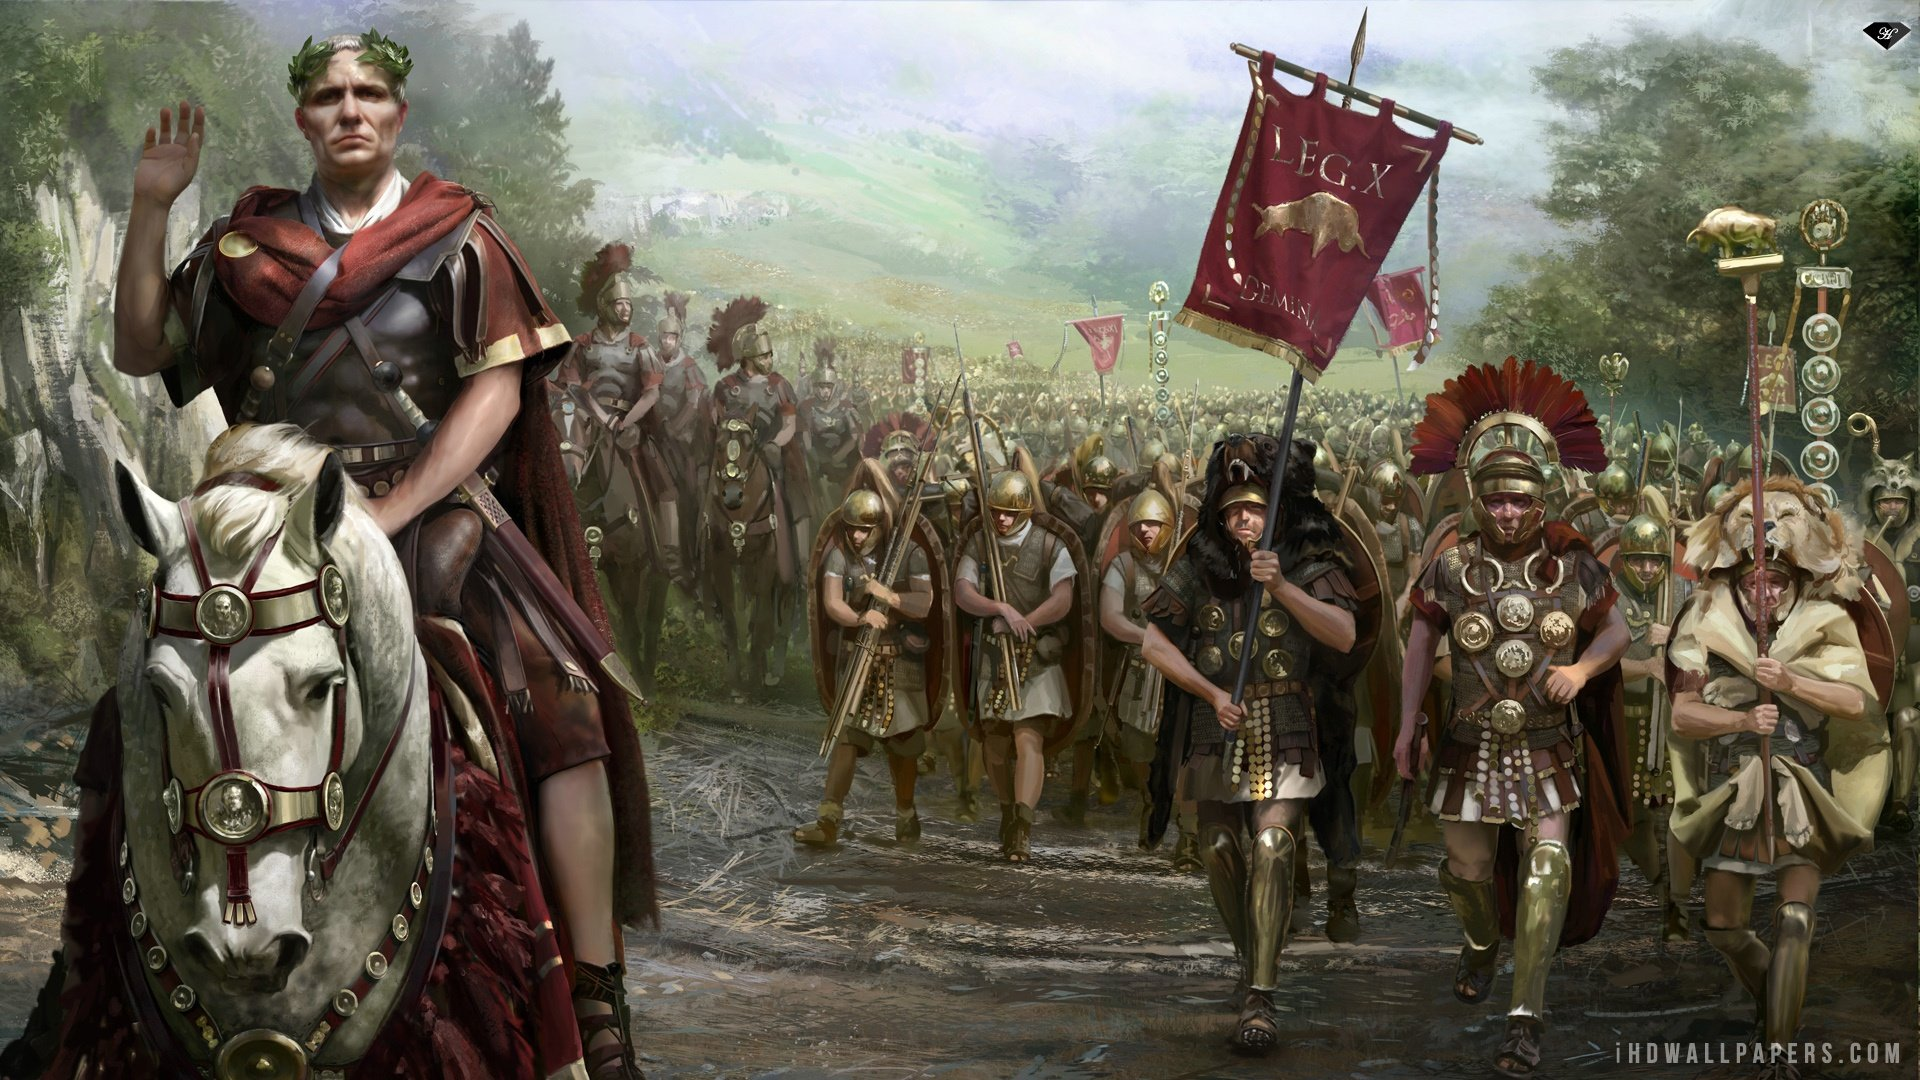 Total War Rome II HD Wallpaper   iHD Wallpapers 1920x1080